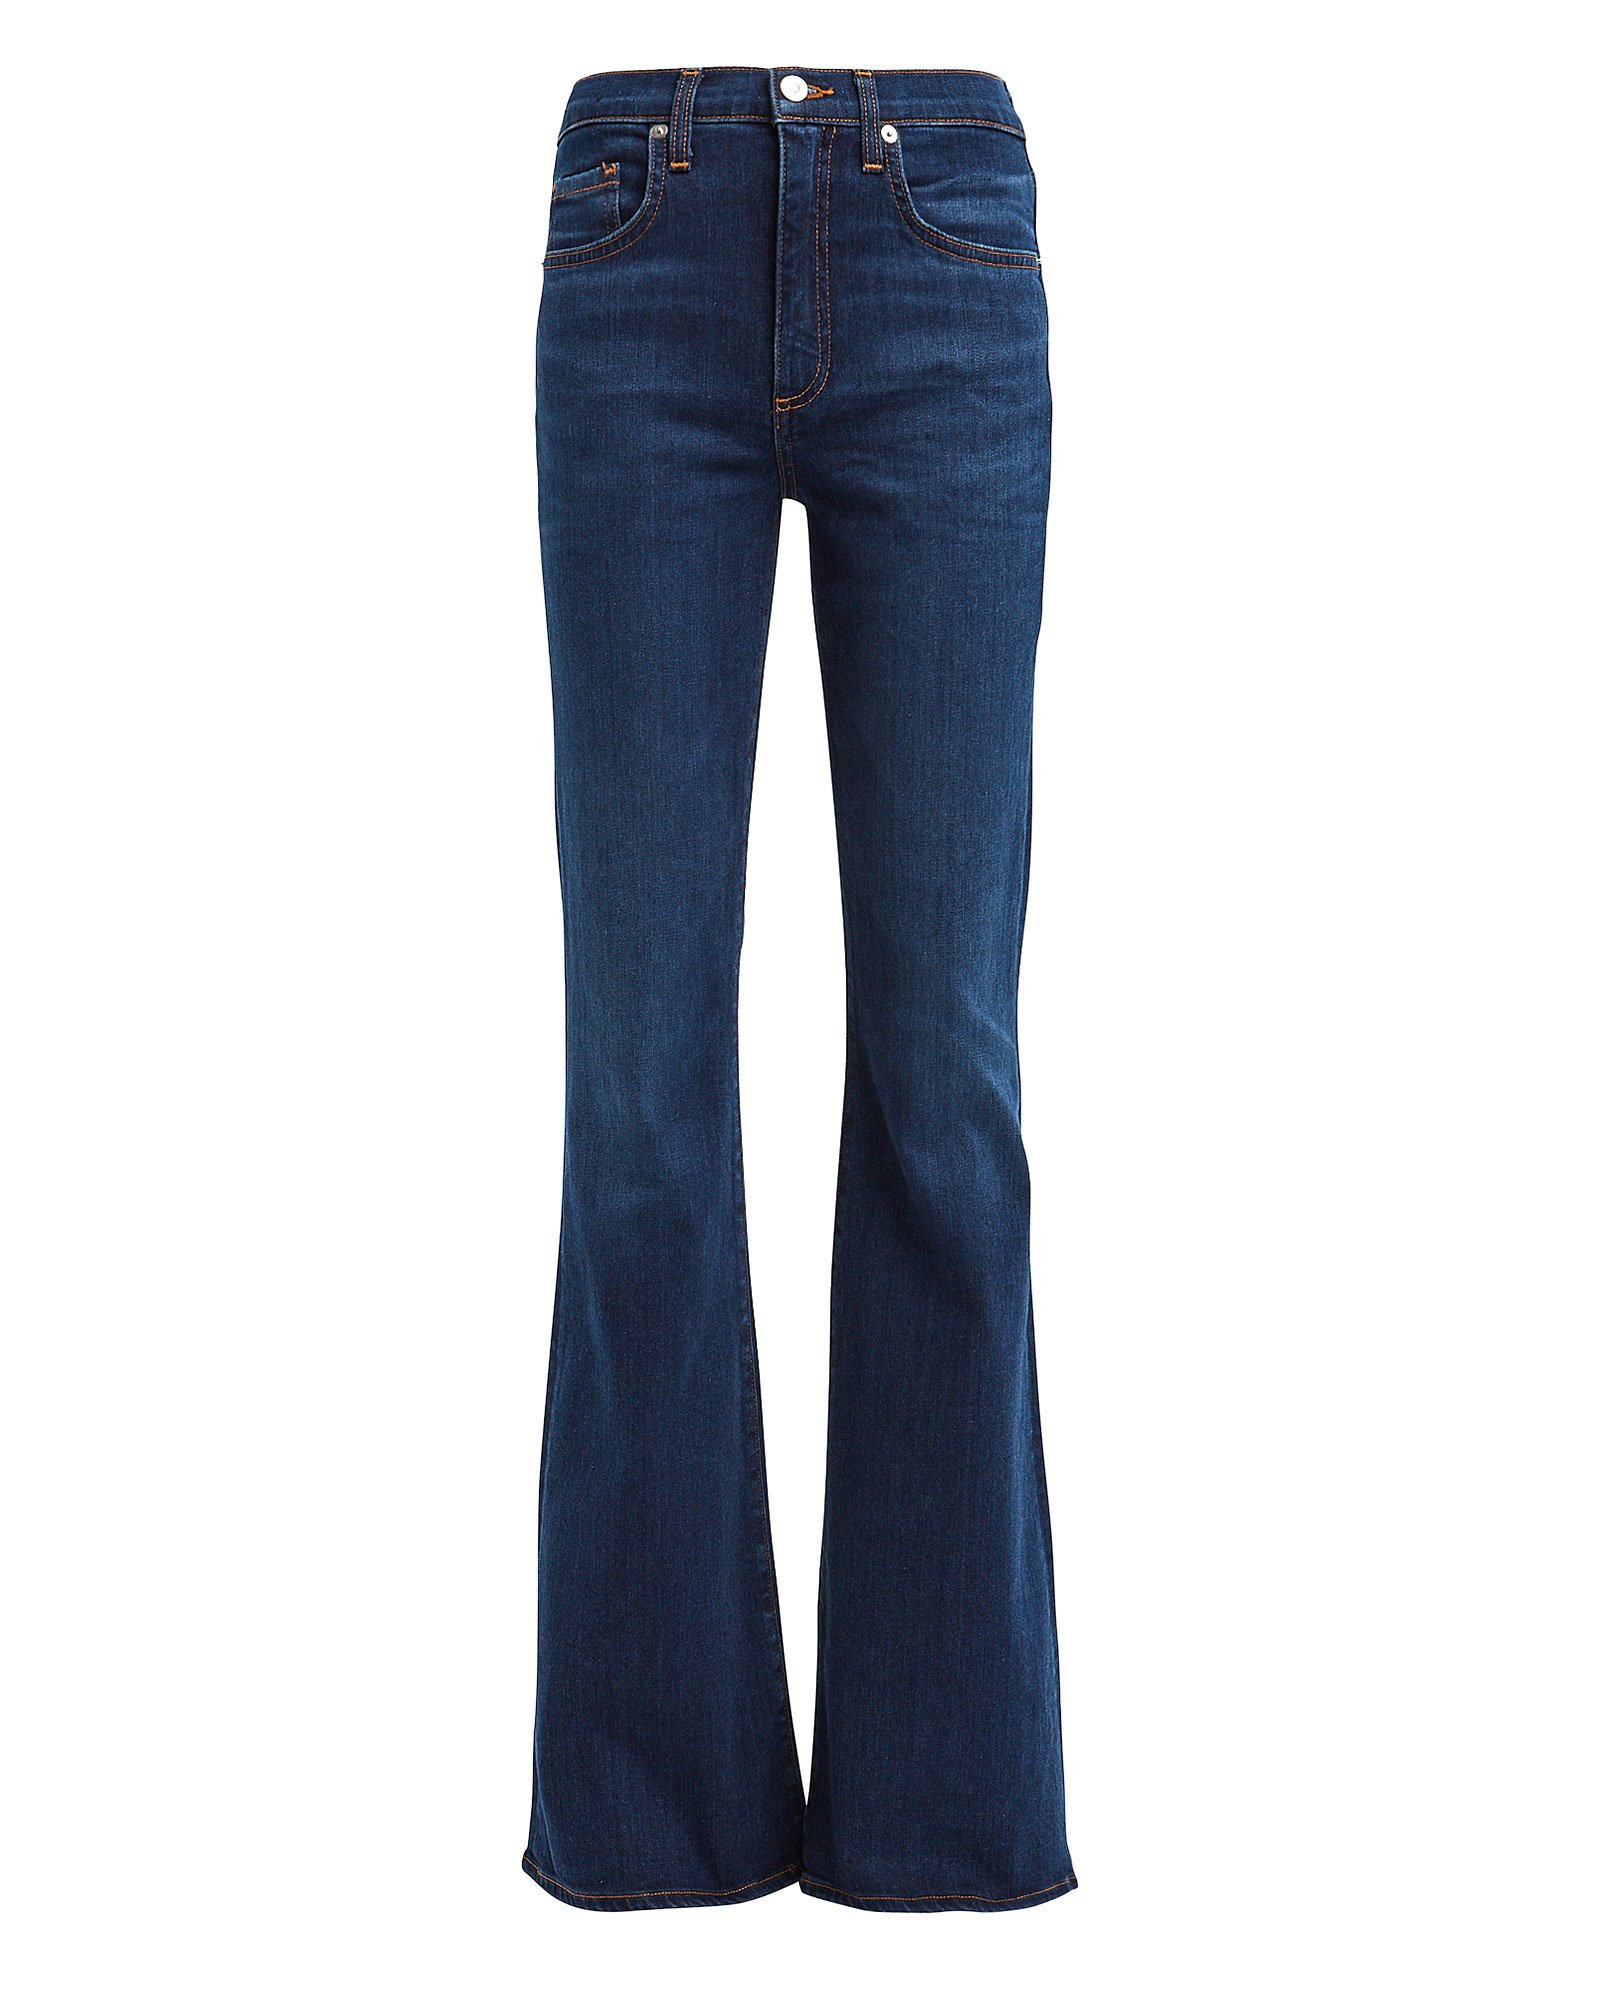 Veronica Beard Jeans VERONICA BEARD BEVERLY FLARED HIGH-RISE JEANS